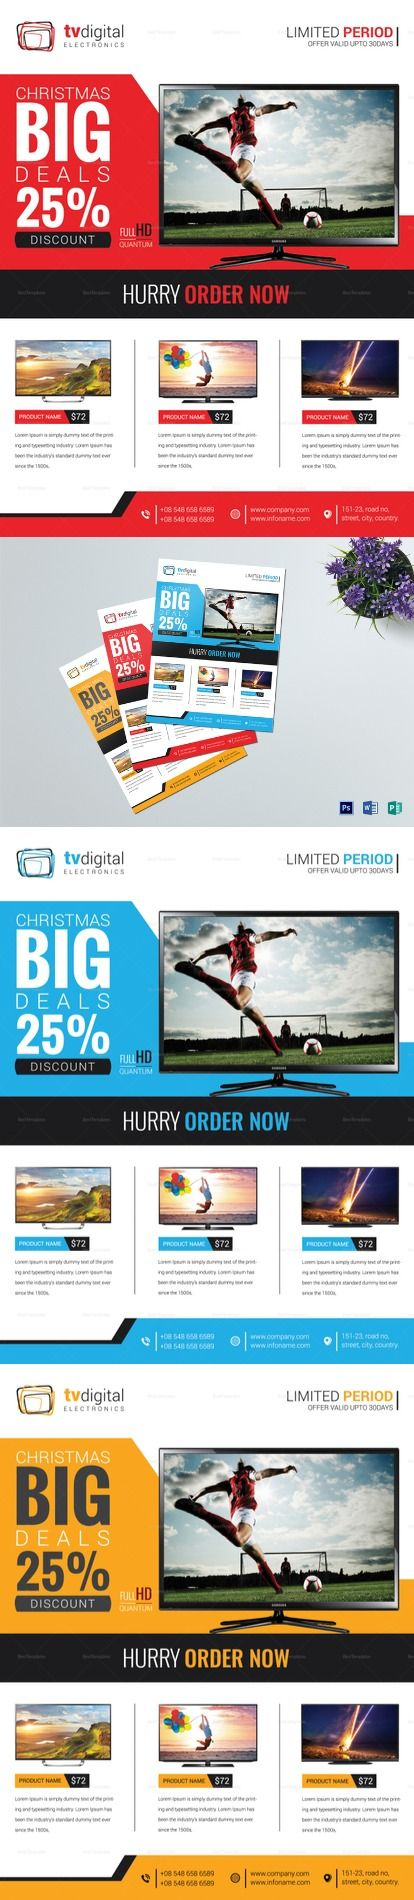 Television Product Sale Flyer Template